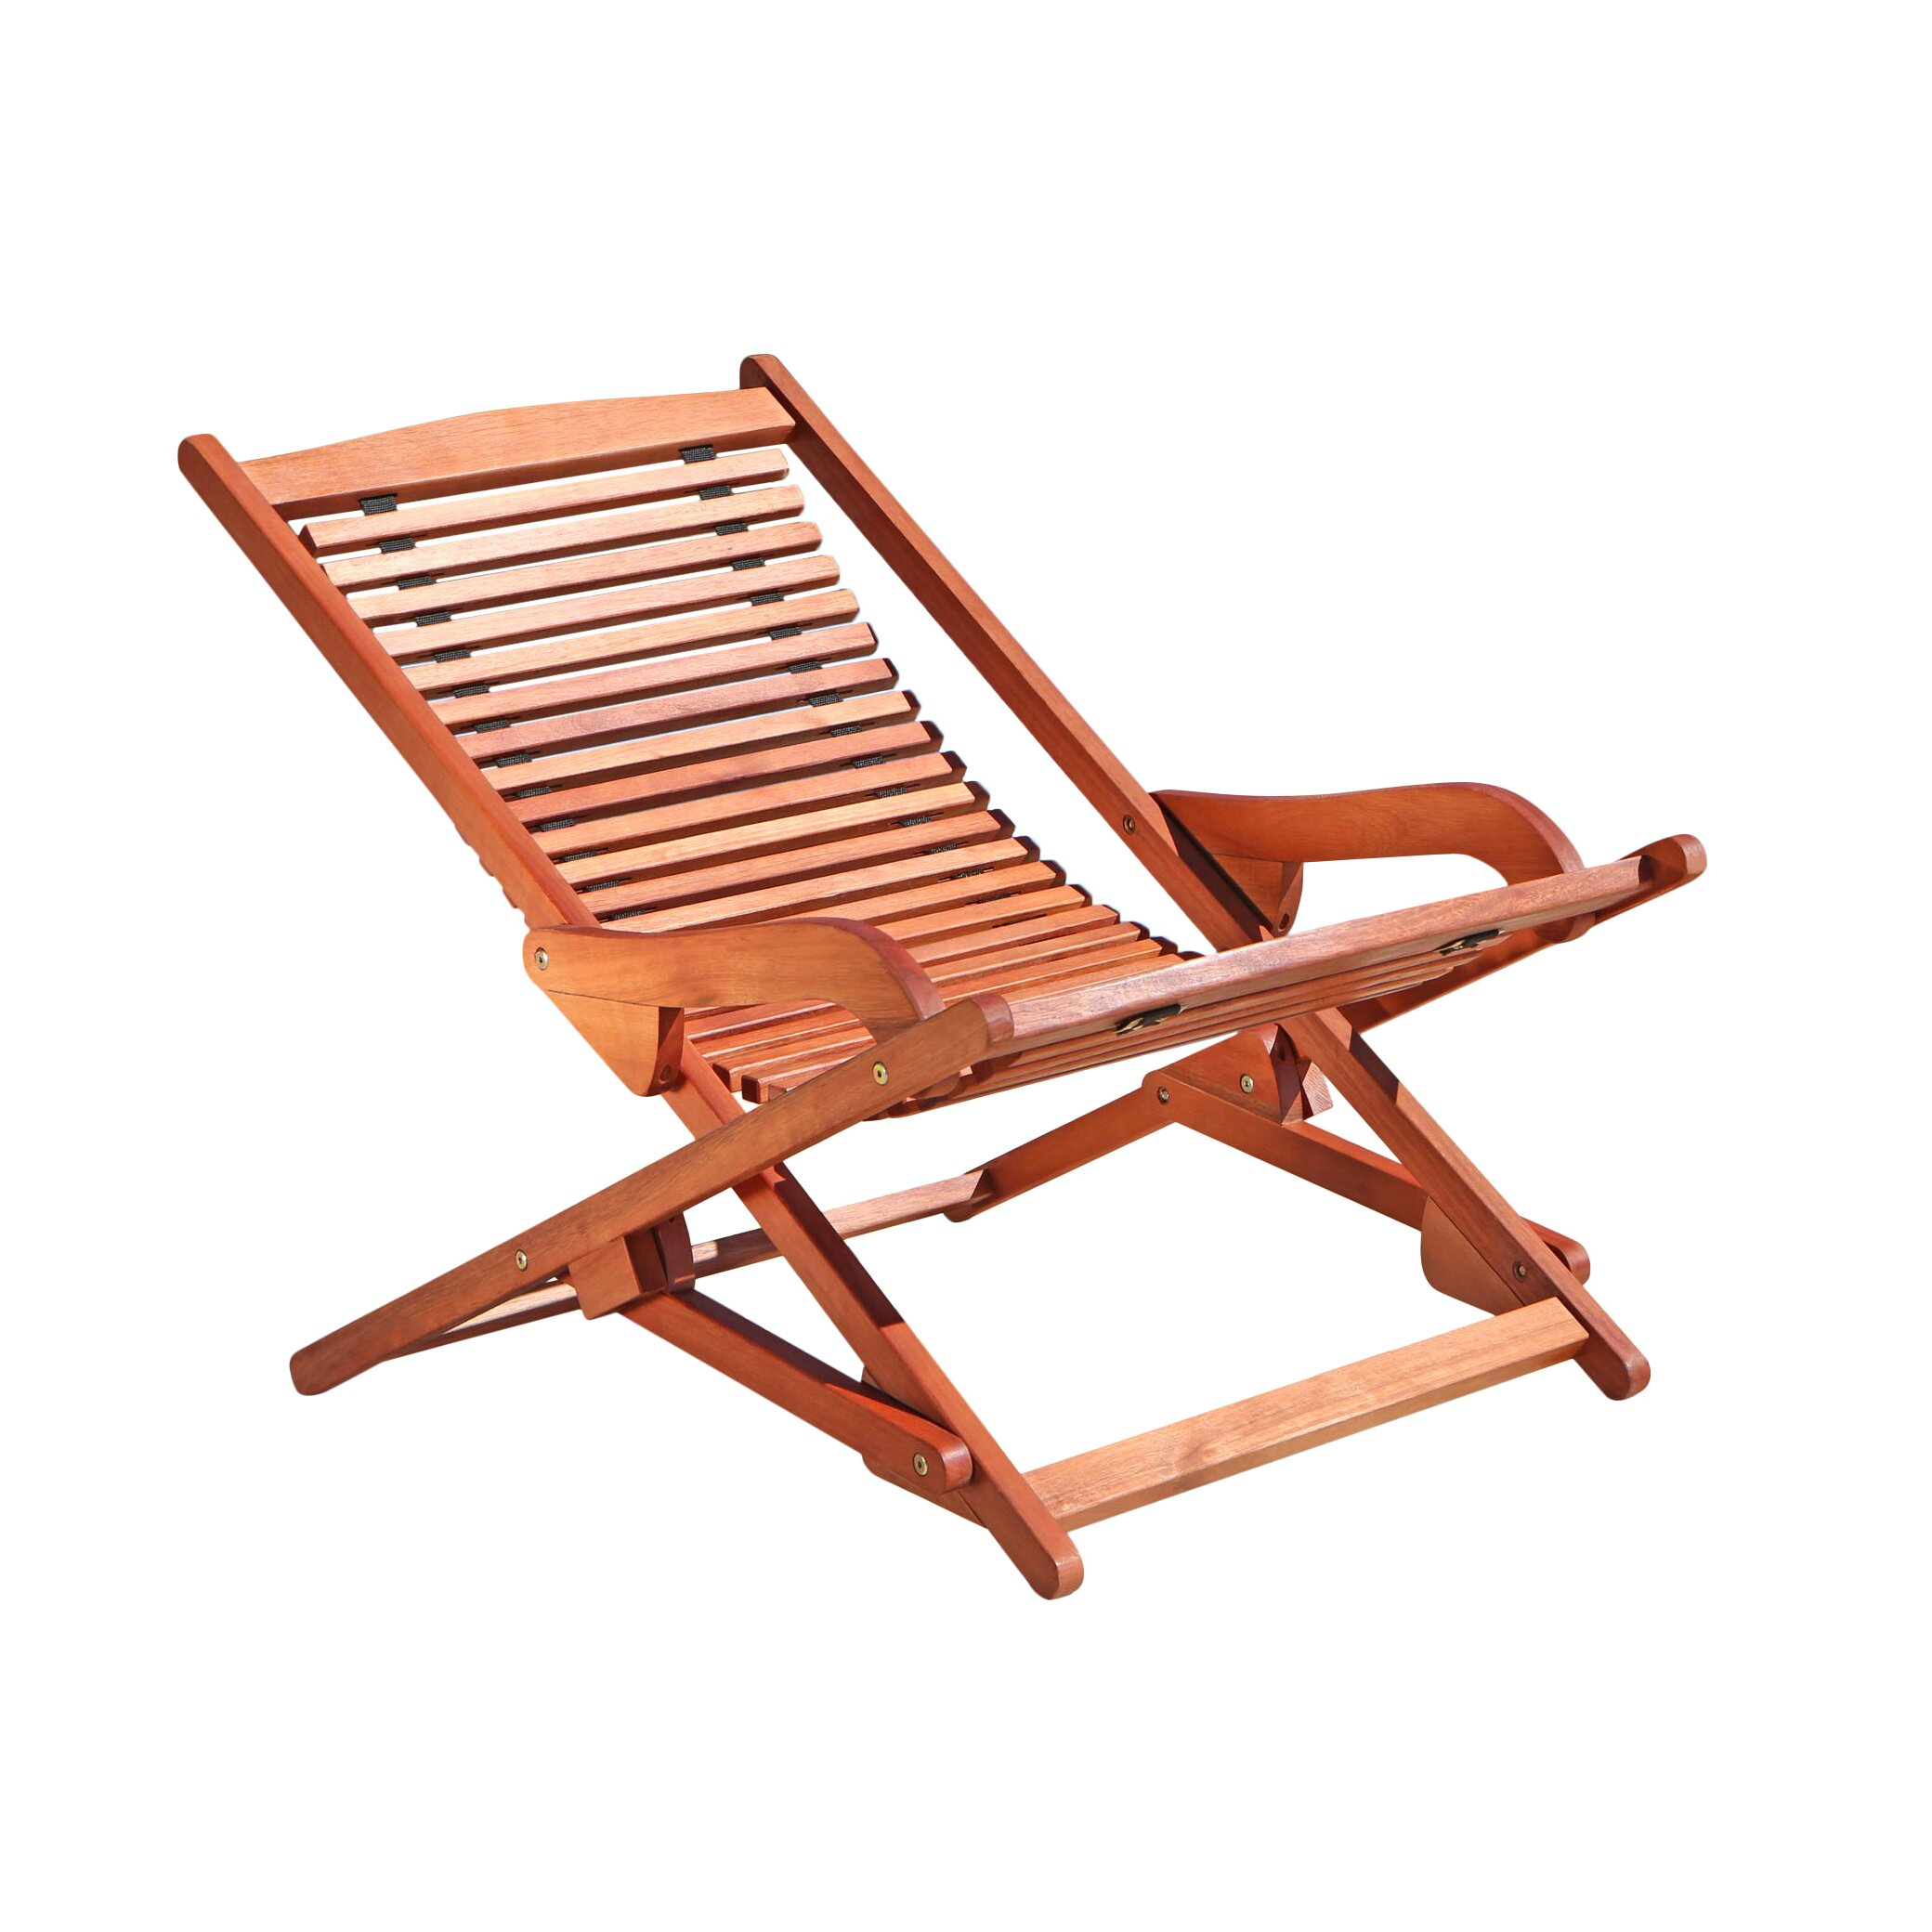 Beach lawn chairs wayfair autos post for Cat chaise lounge uk